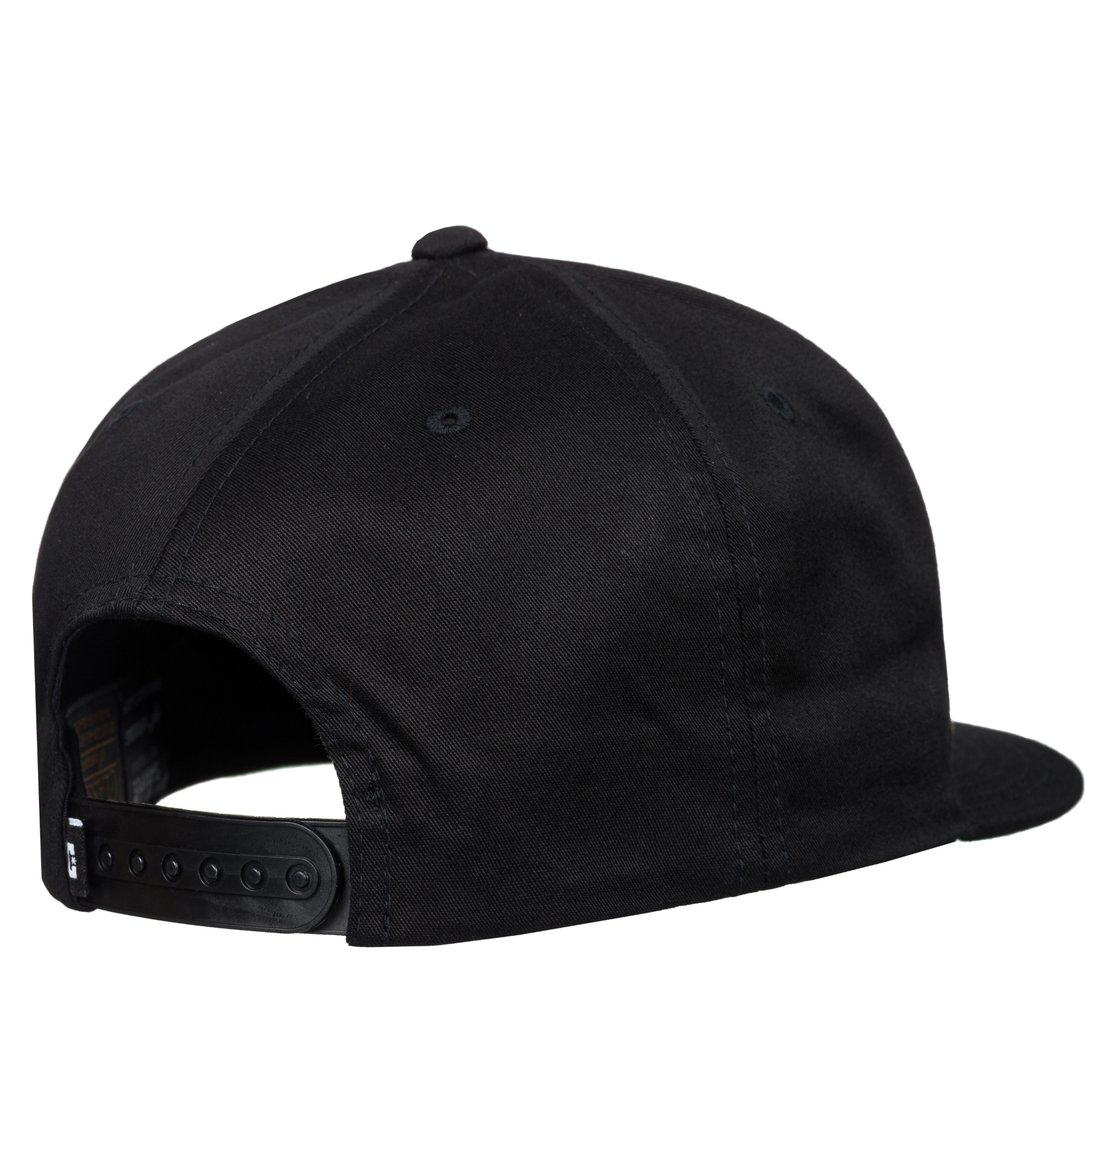 snappy casquette snapback 887767000487 dc shoes. Black Bedroom Furniture Sets. Home Design Ideas